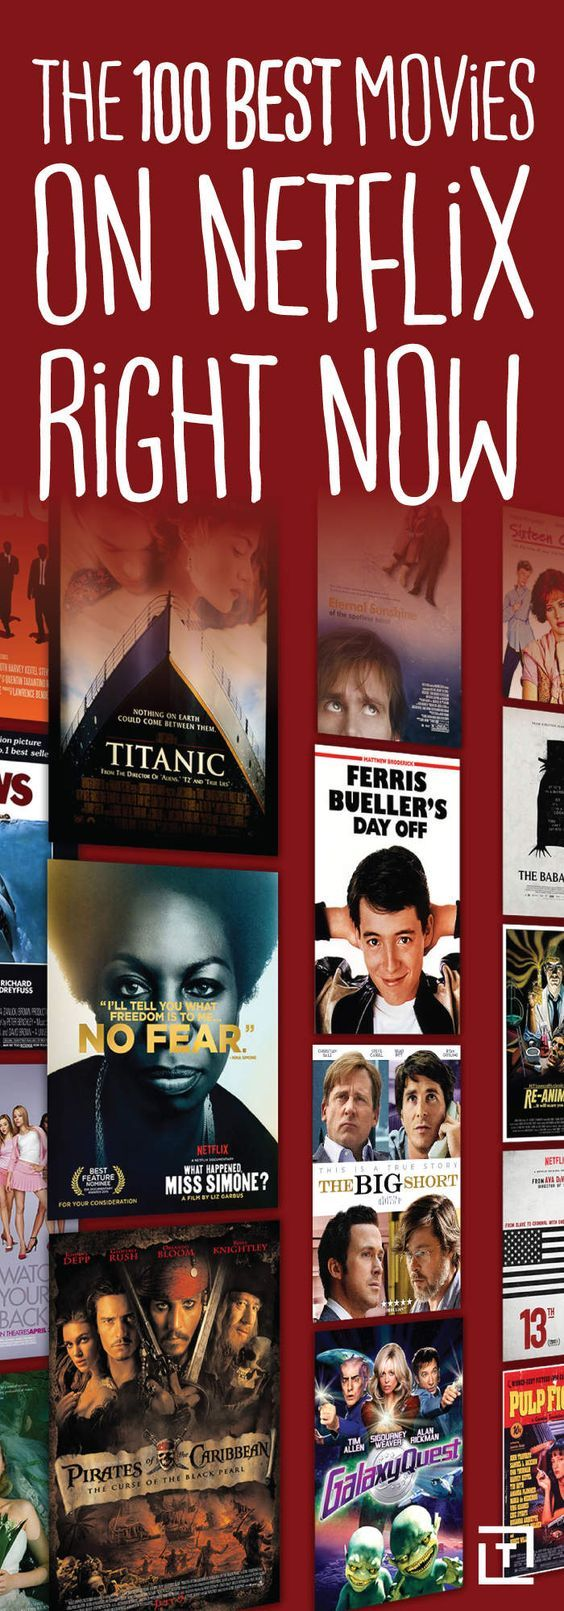 The 100 Best Movies On Netflix Right Now  Adult Stuff  Good Movies On Netflix, Netflix Movie List, Netflix Movies To Watch